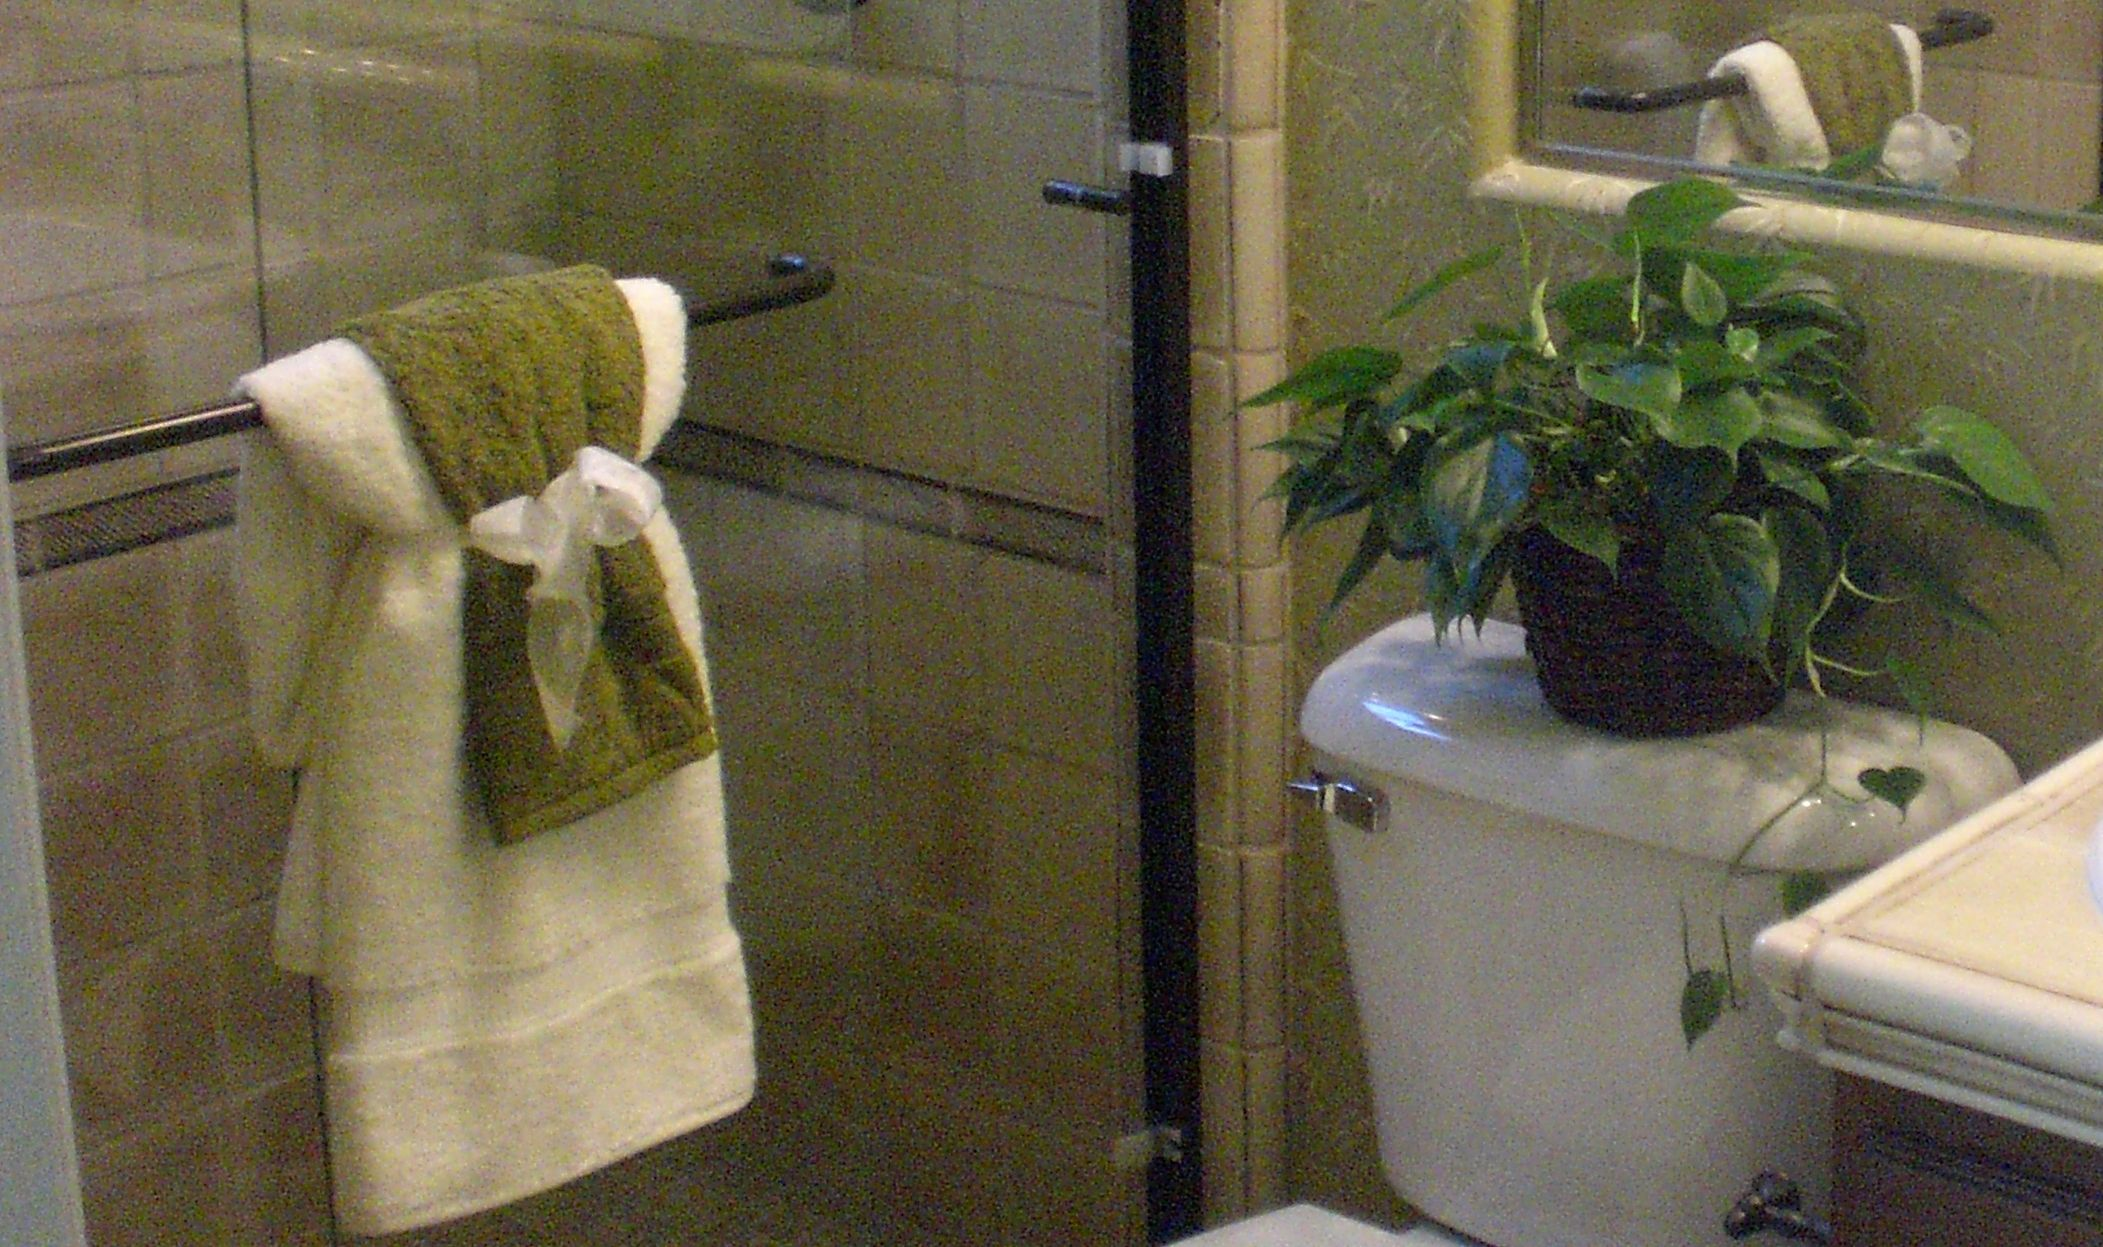 Towel Decorations Everyday Items Towels And Bathroom - Lavender towels for small bathroom ideas